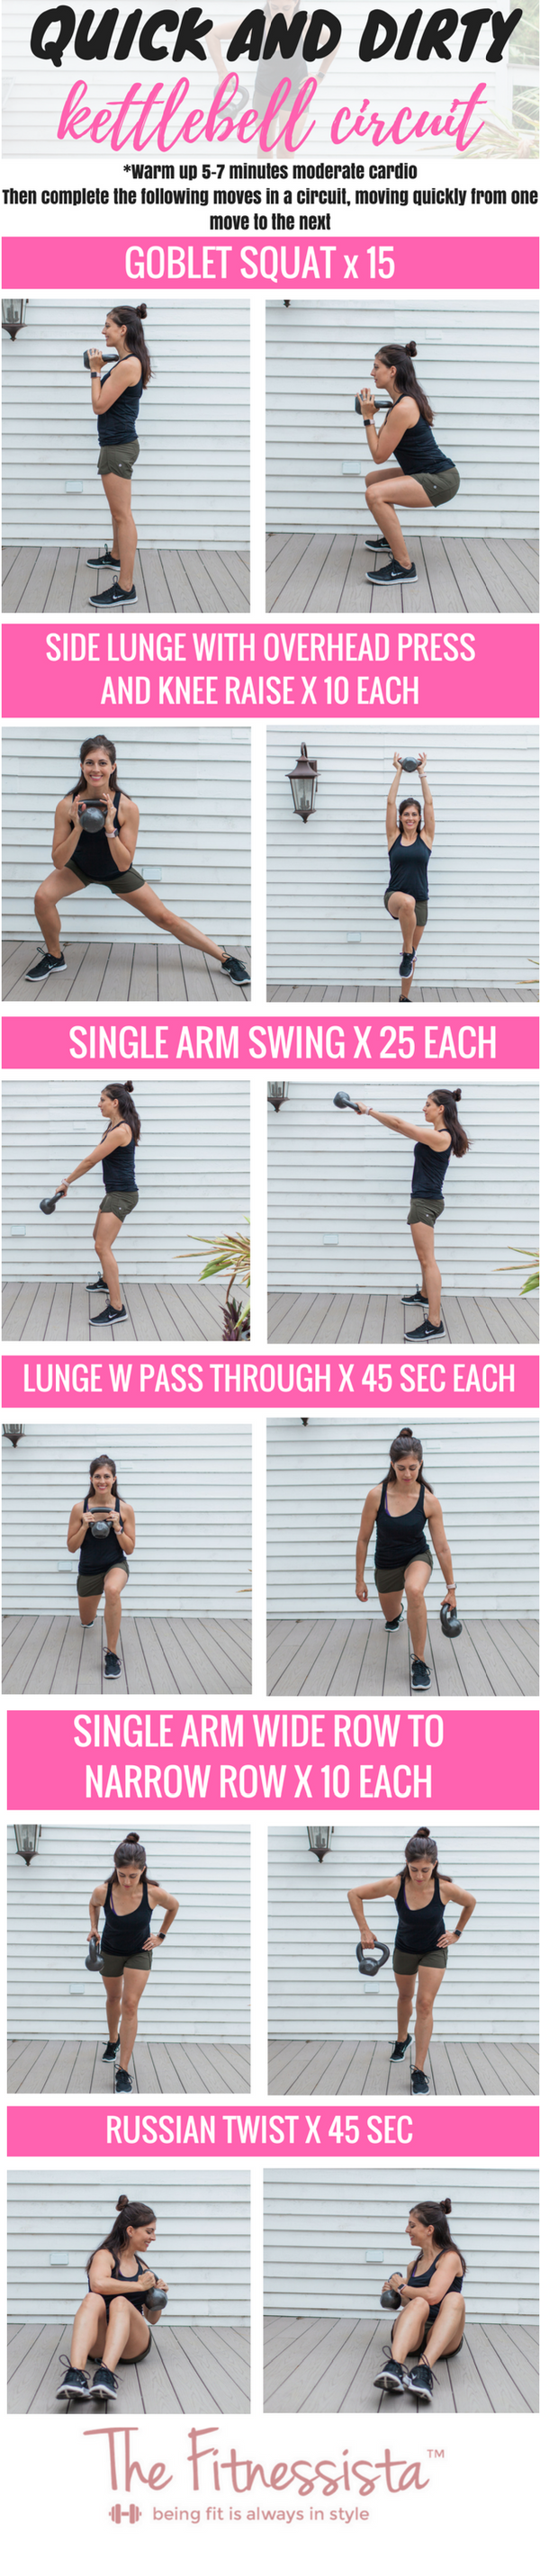 Total Body Kettlebell Circuit Workout This Will Strengthen Your Entire Using A Single